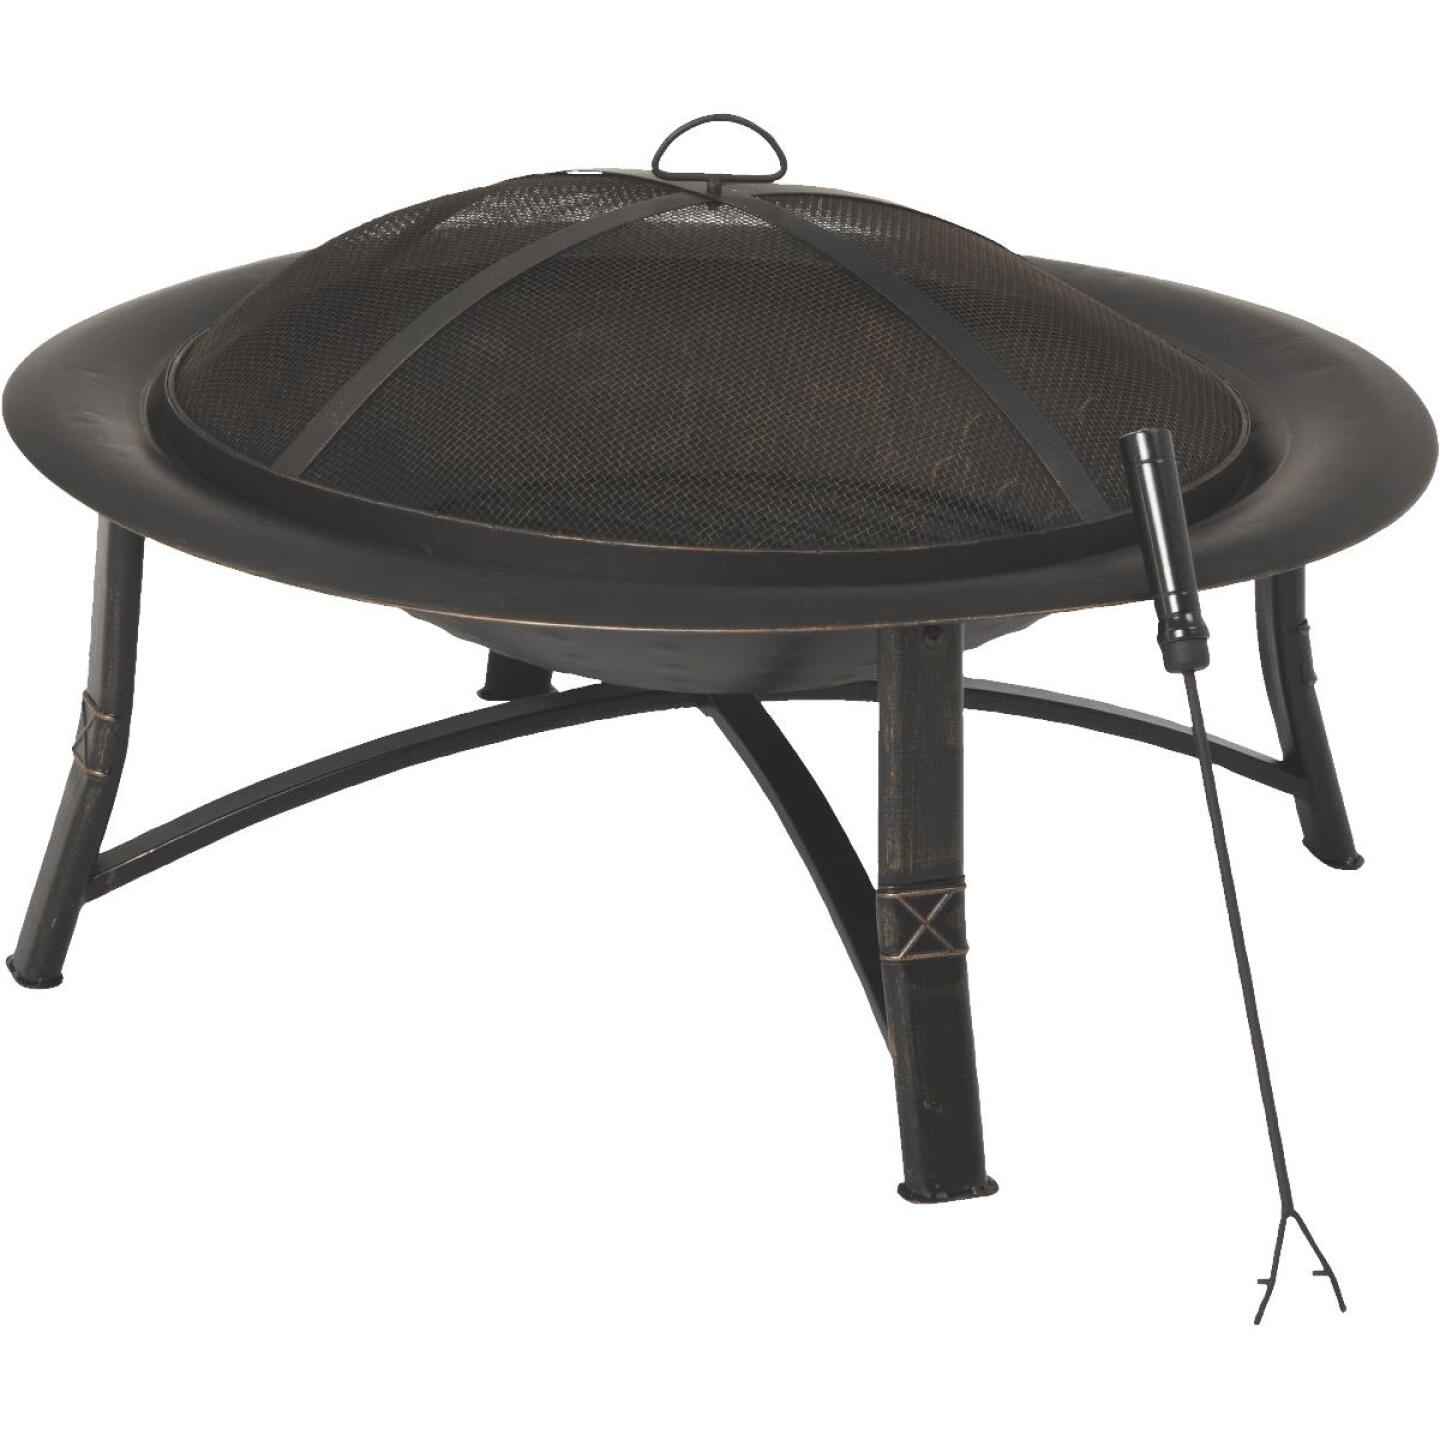 Outdoor Expressions 35 In. Antique Bronze Round Steel Fire Pit Image 1